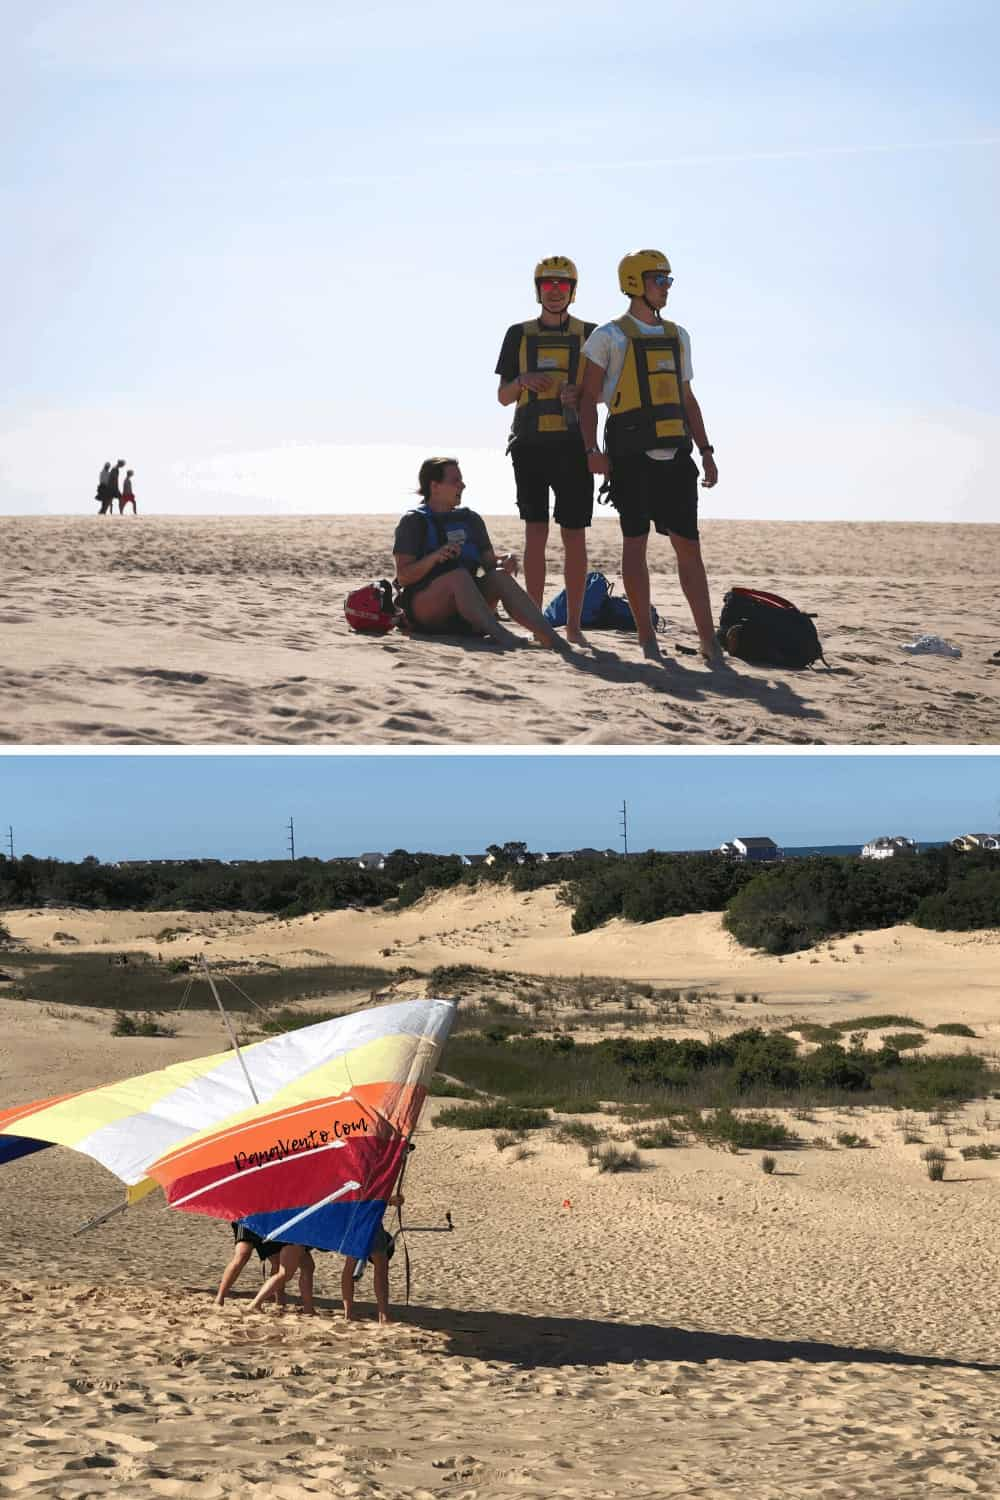 Clothing for OBX Hang Gliding Experience